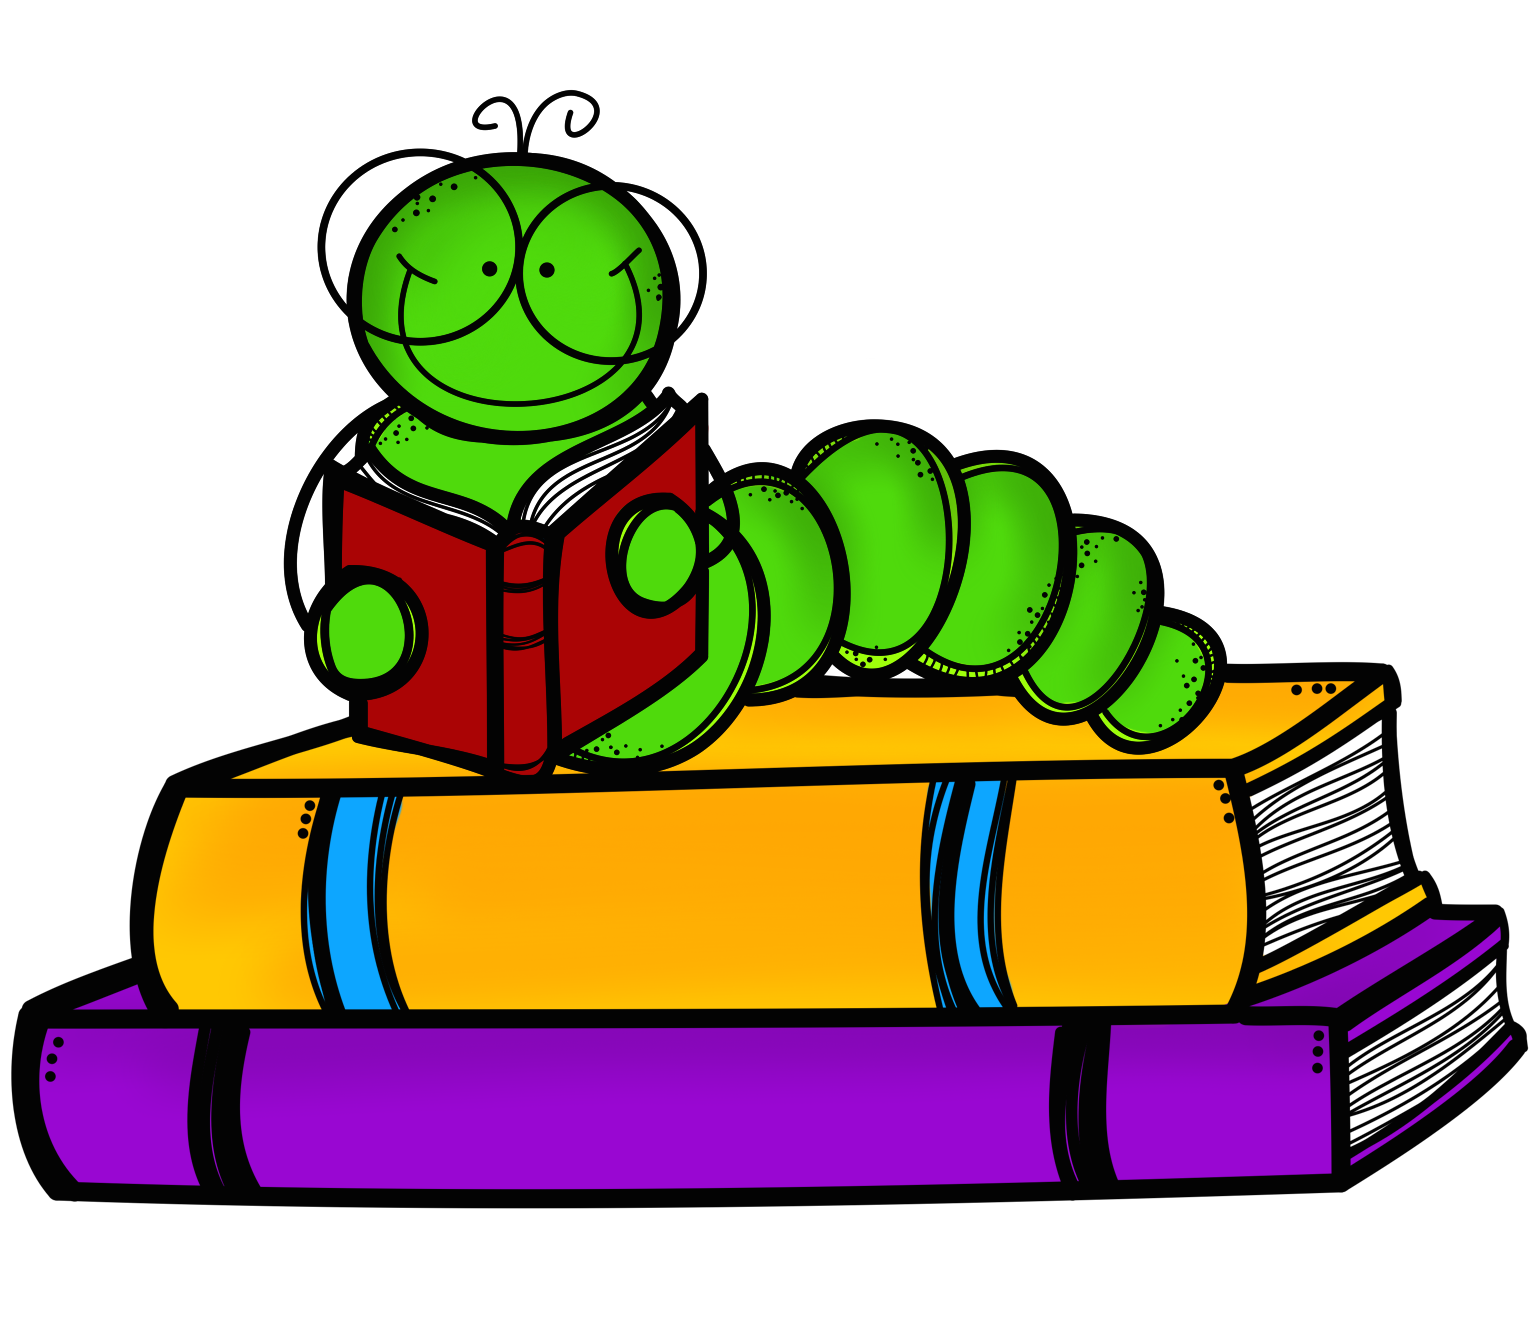 Eventkeeper at townsend public. Worm clipart cute